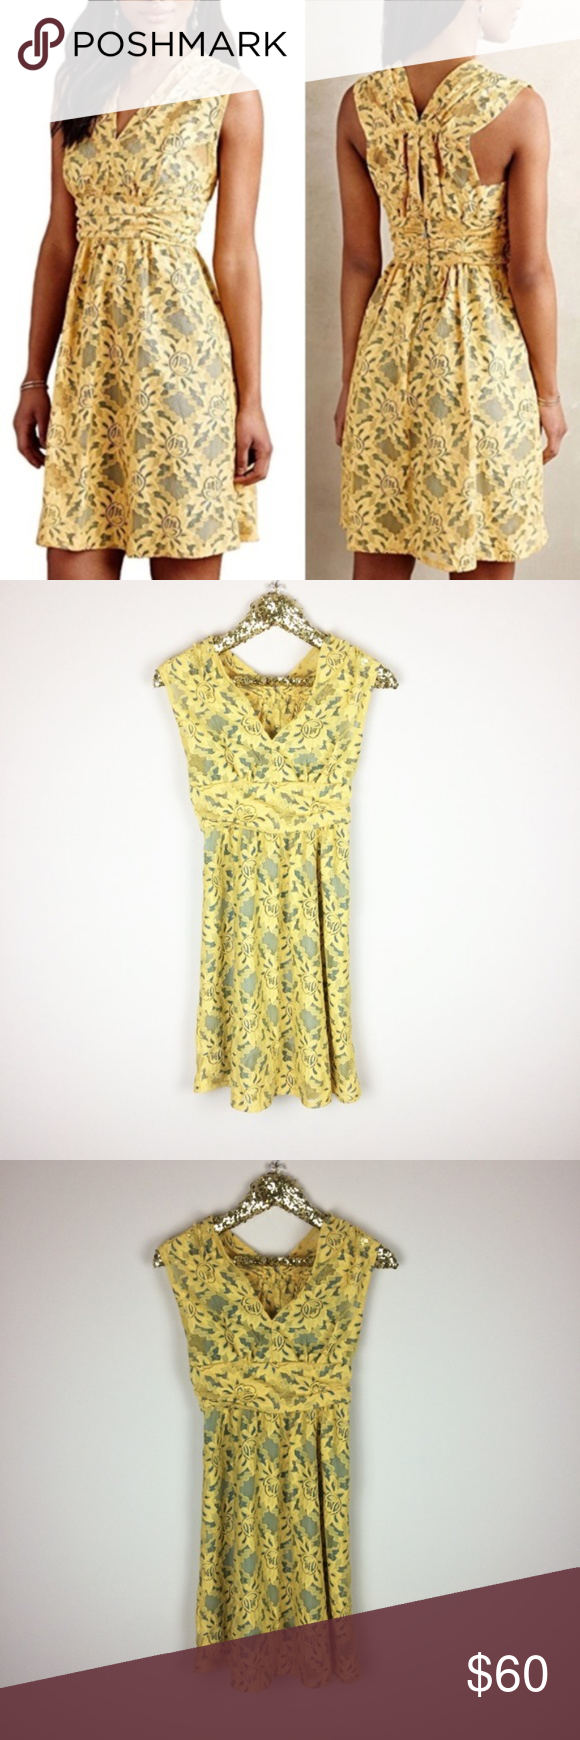 """352e5c00e5 Anthropologie Plenty by Tracy Reese Lace Dress NEW Plenty by Tracy Reese """" Niki"""" sleeveless dress from Anthropologie. New without tags Size 0 36 inch  length ..."""